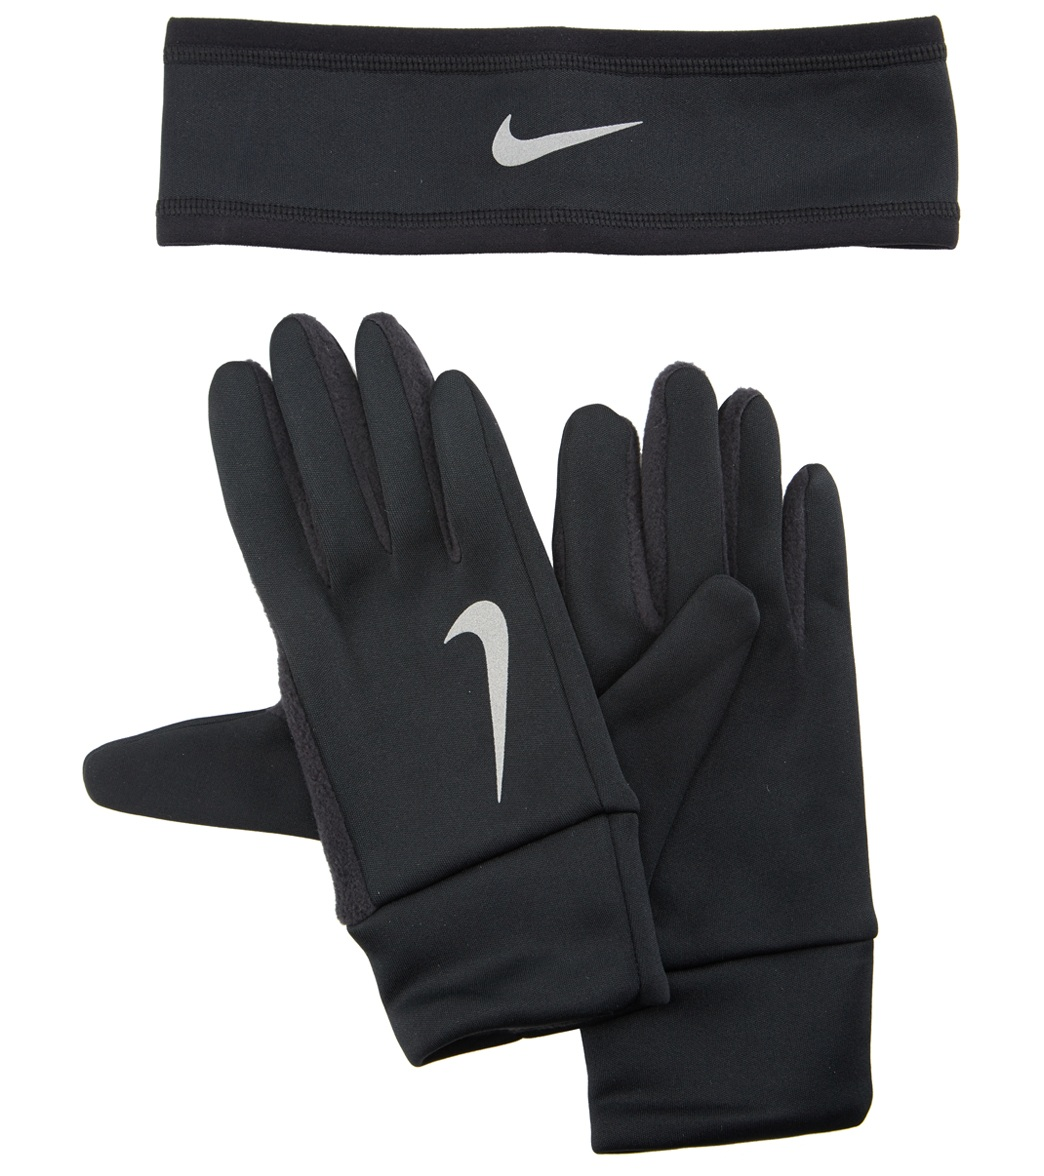 21e068fe9 Nike Women's Run Thermal Headband and Glove Set at SwimOutlet.com